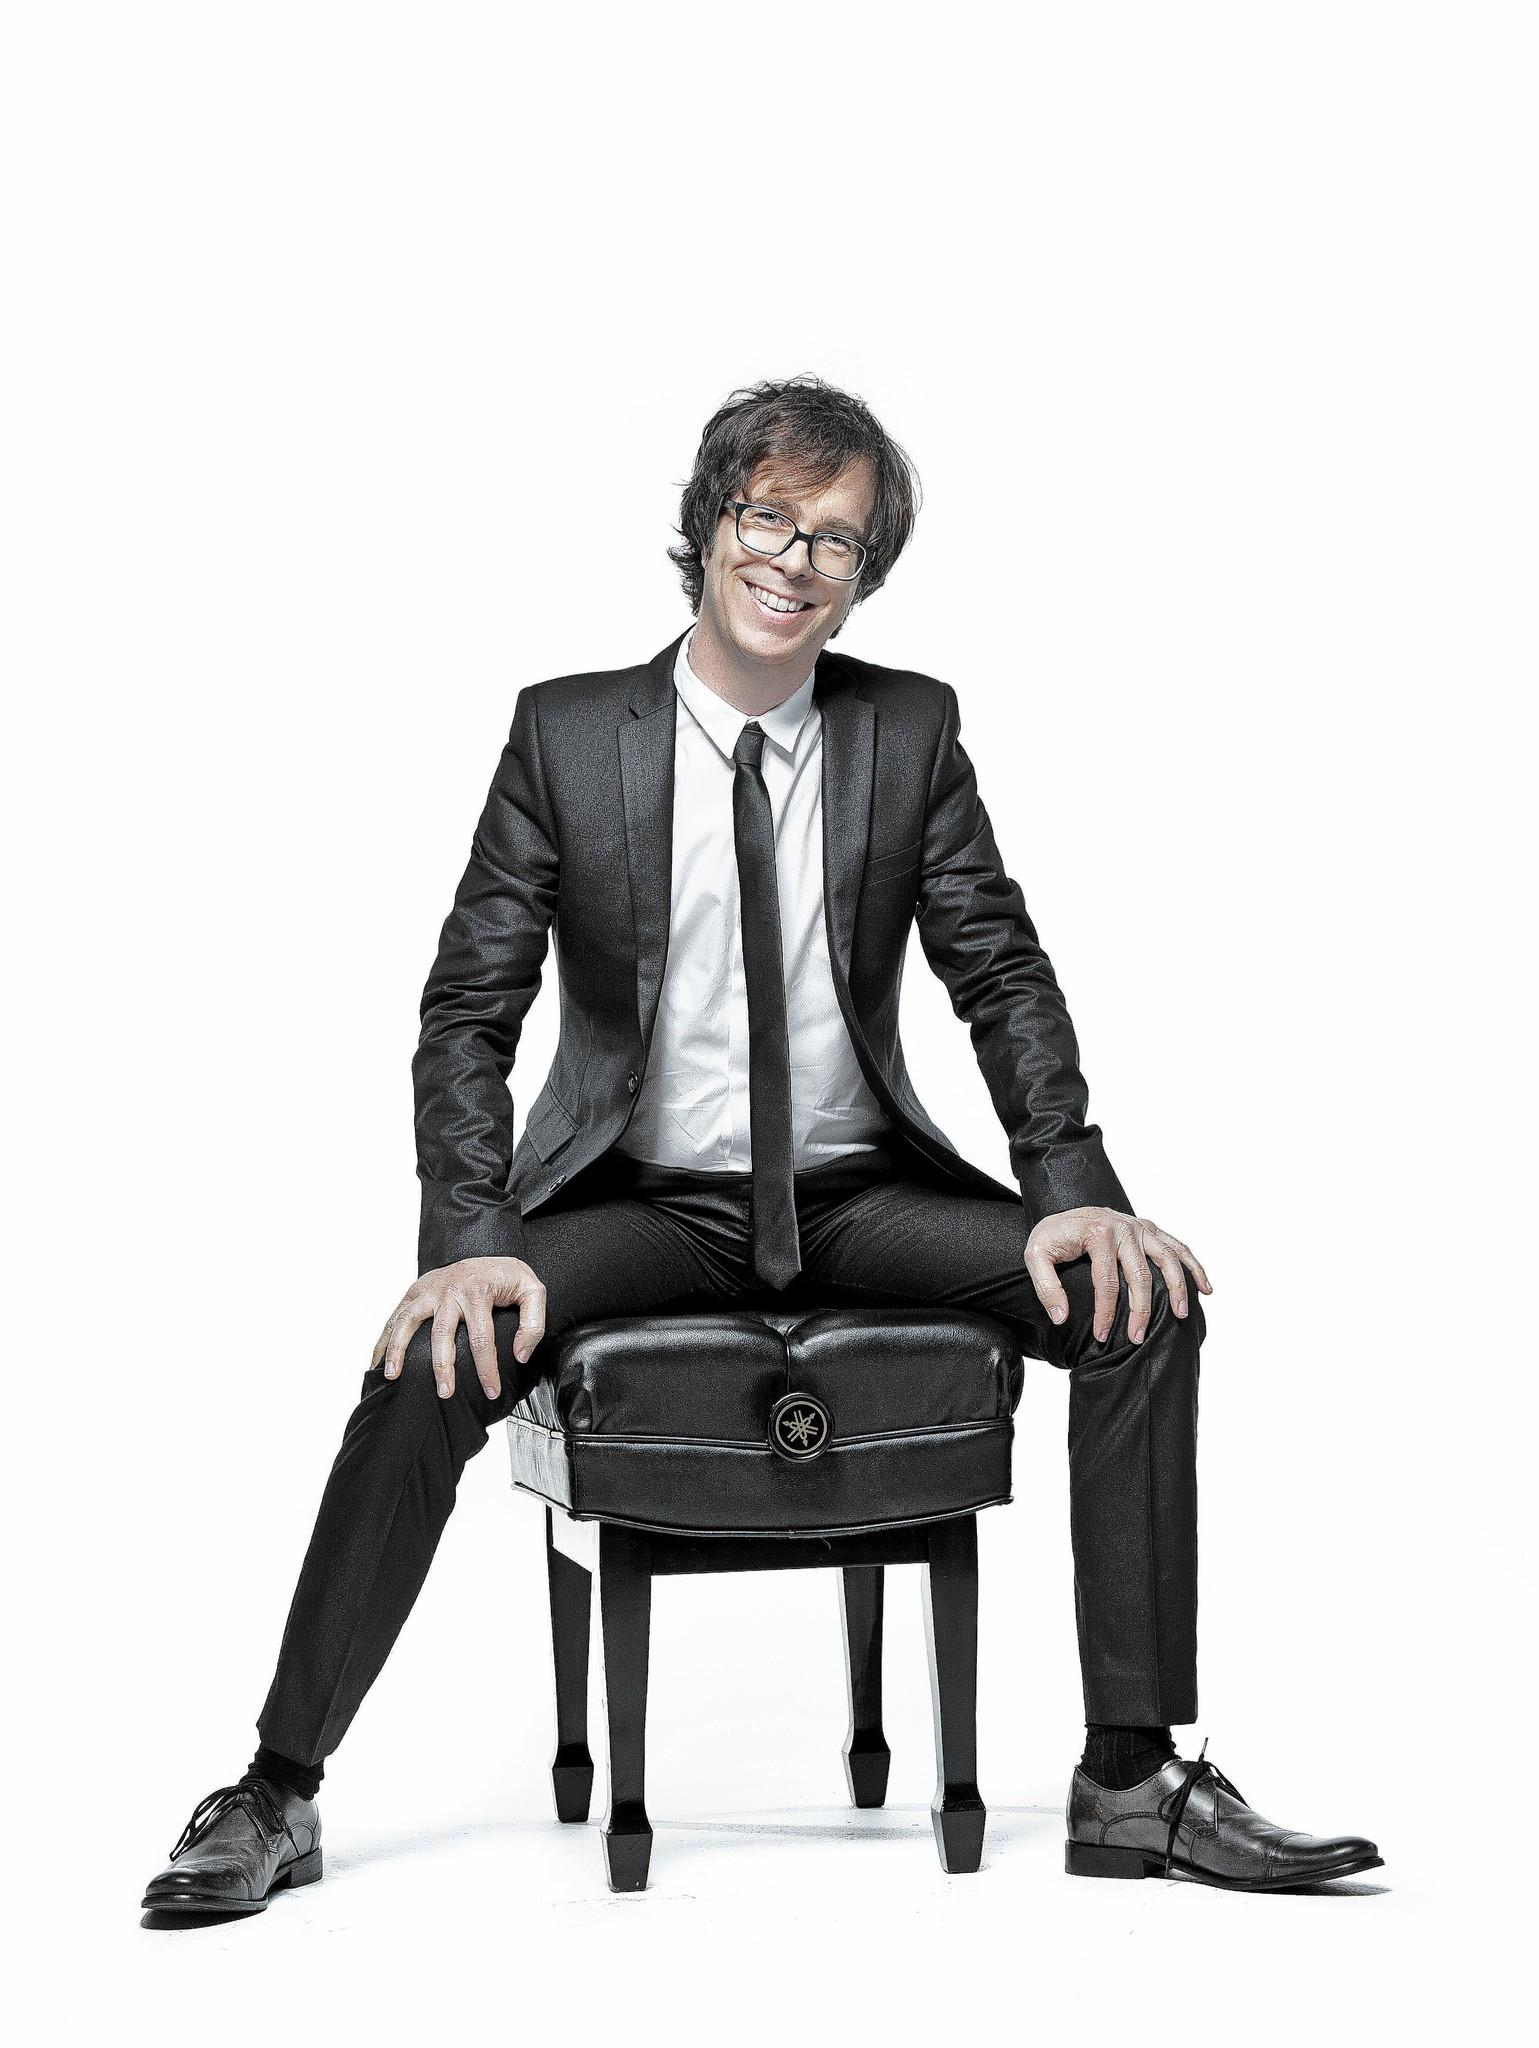 Singer/songwriter/pianist Ben Folds performs with the BSO on July 17.